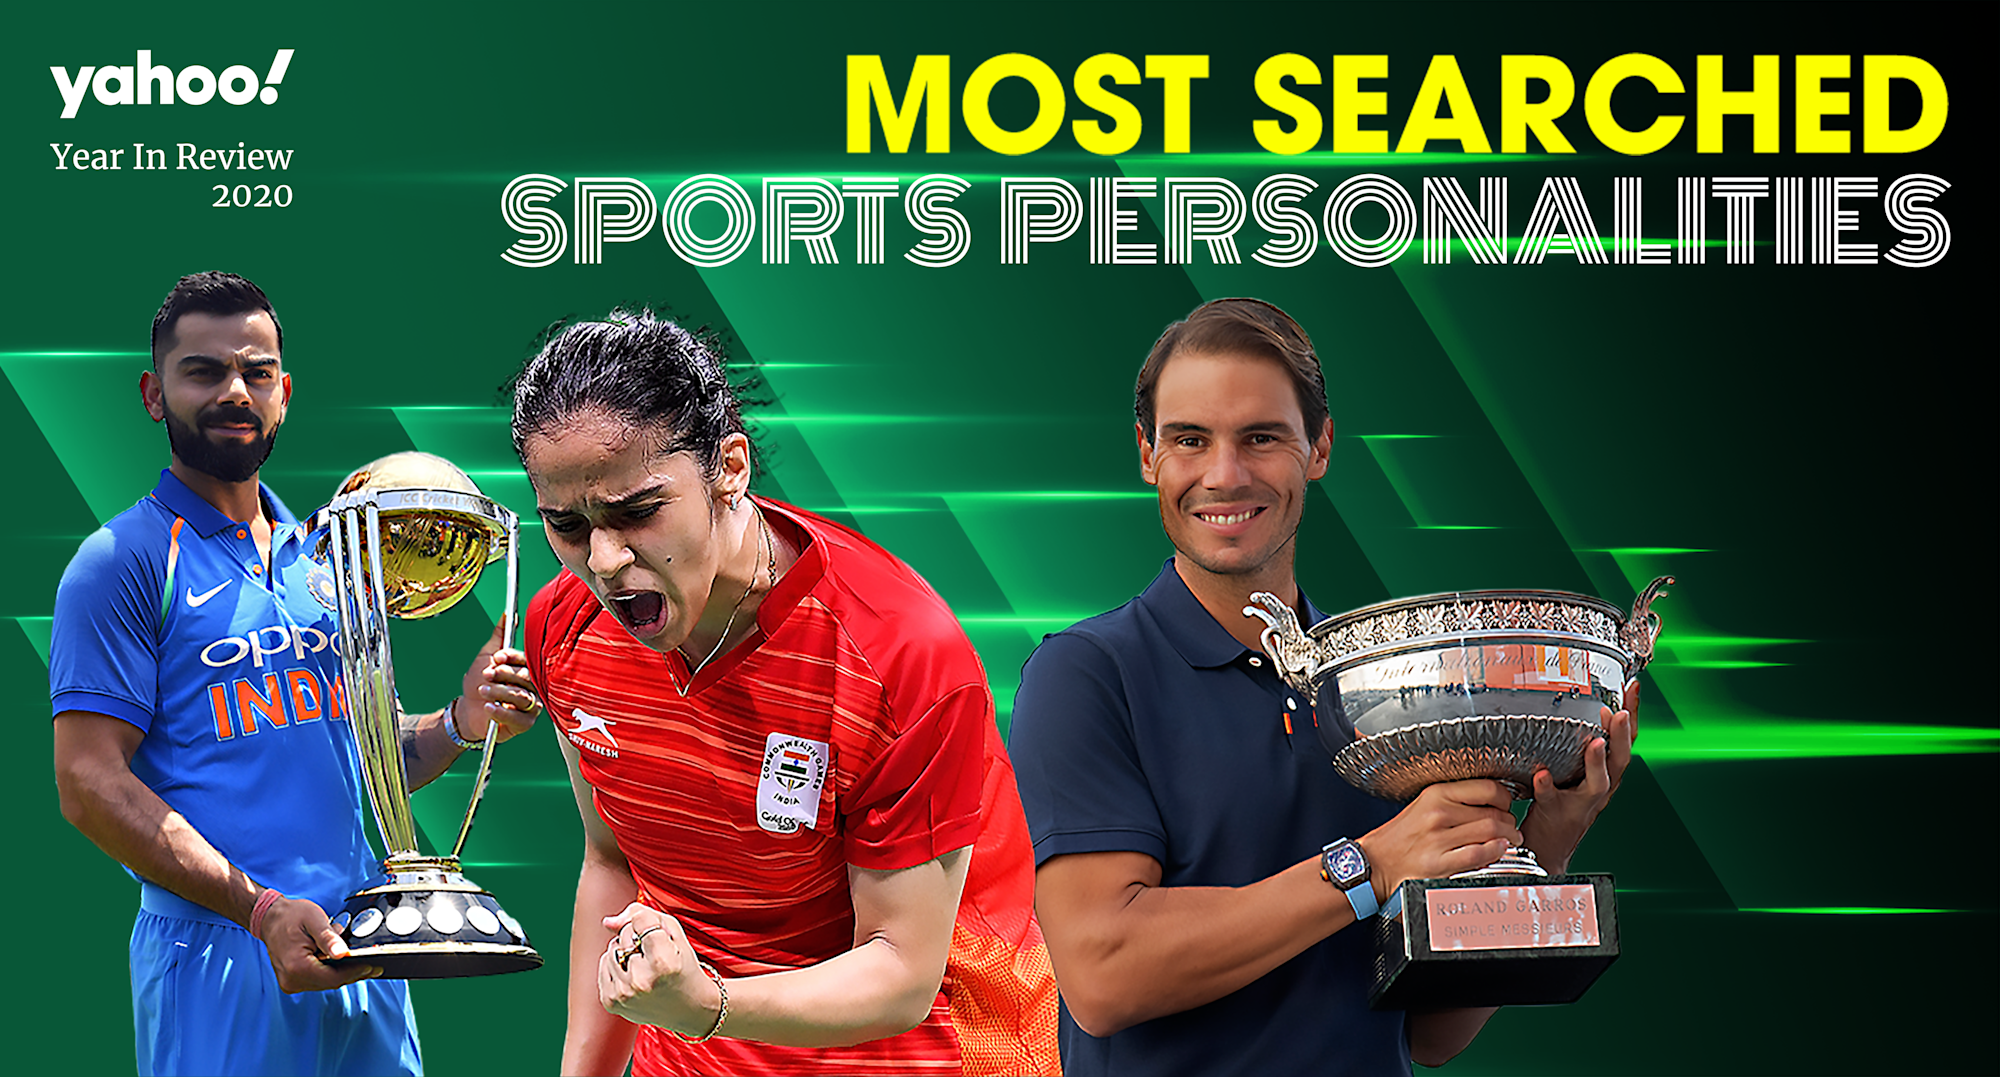 Yahoo India's Most Searched Sports Personalities of 2020